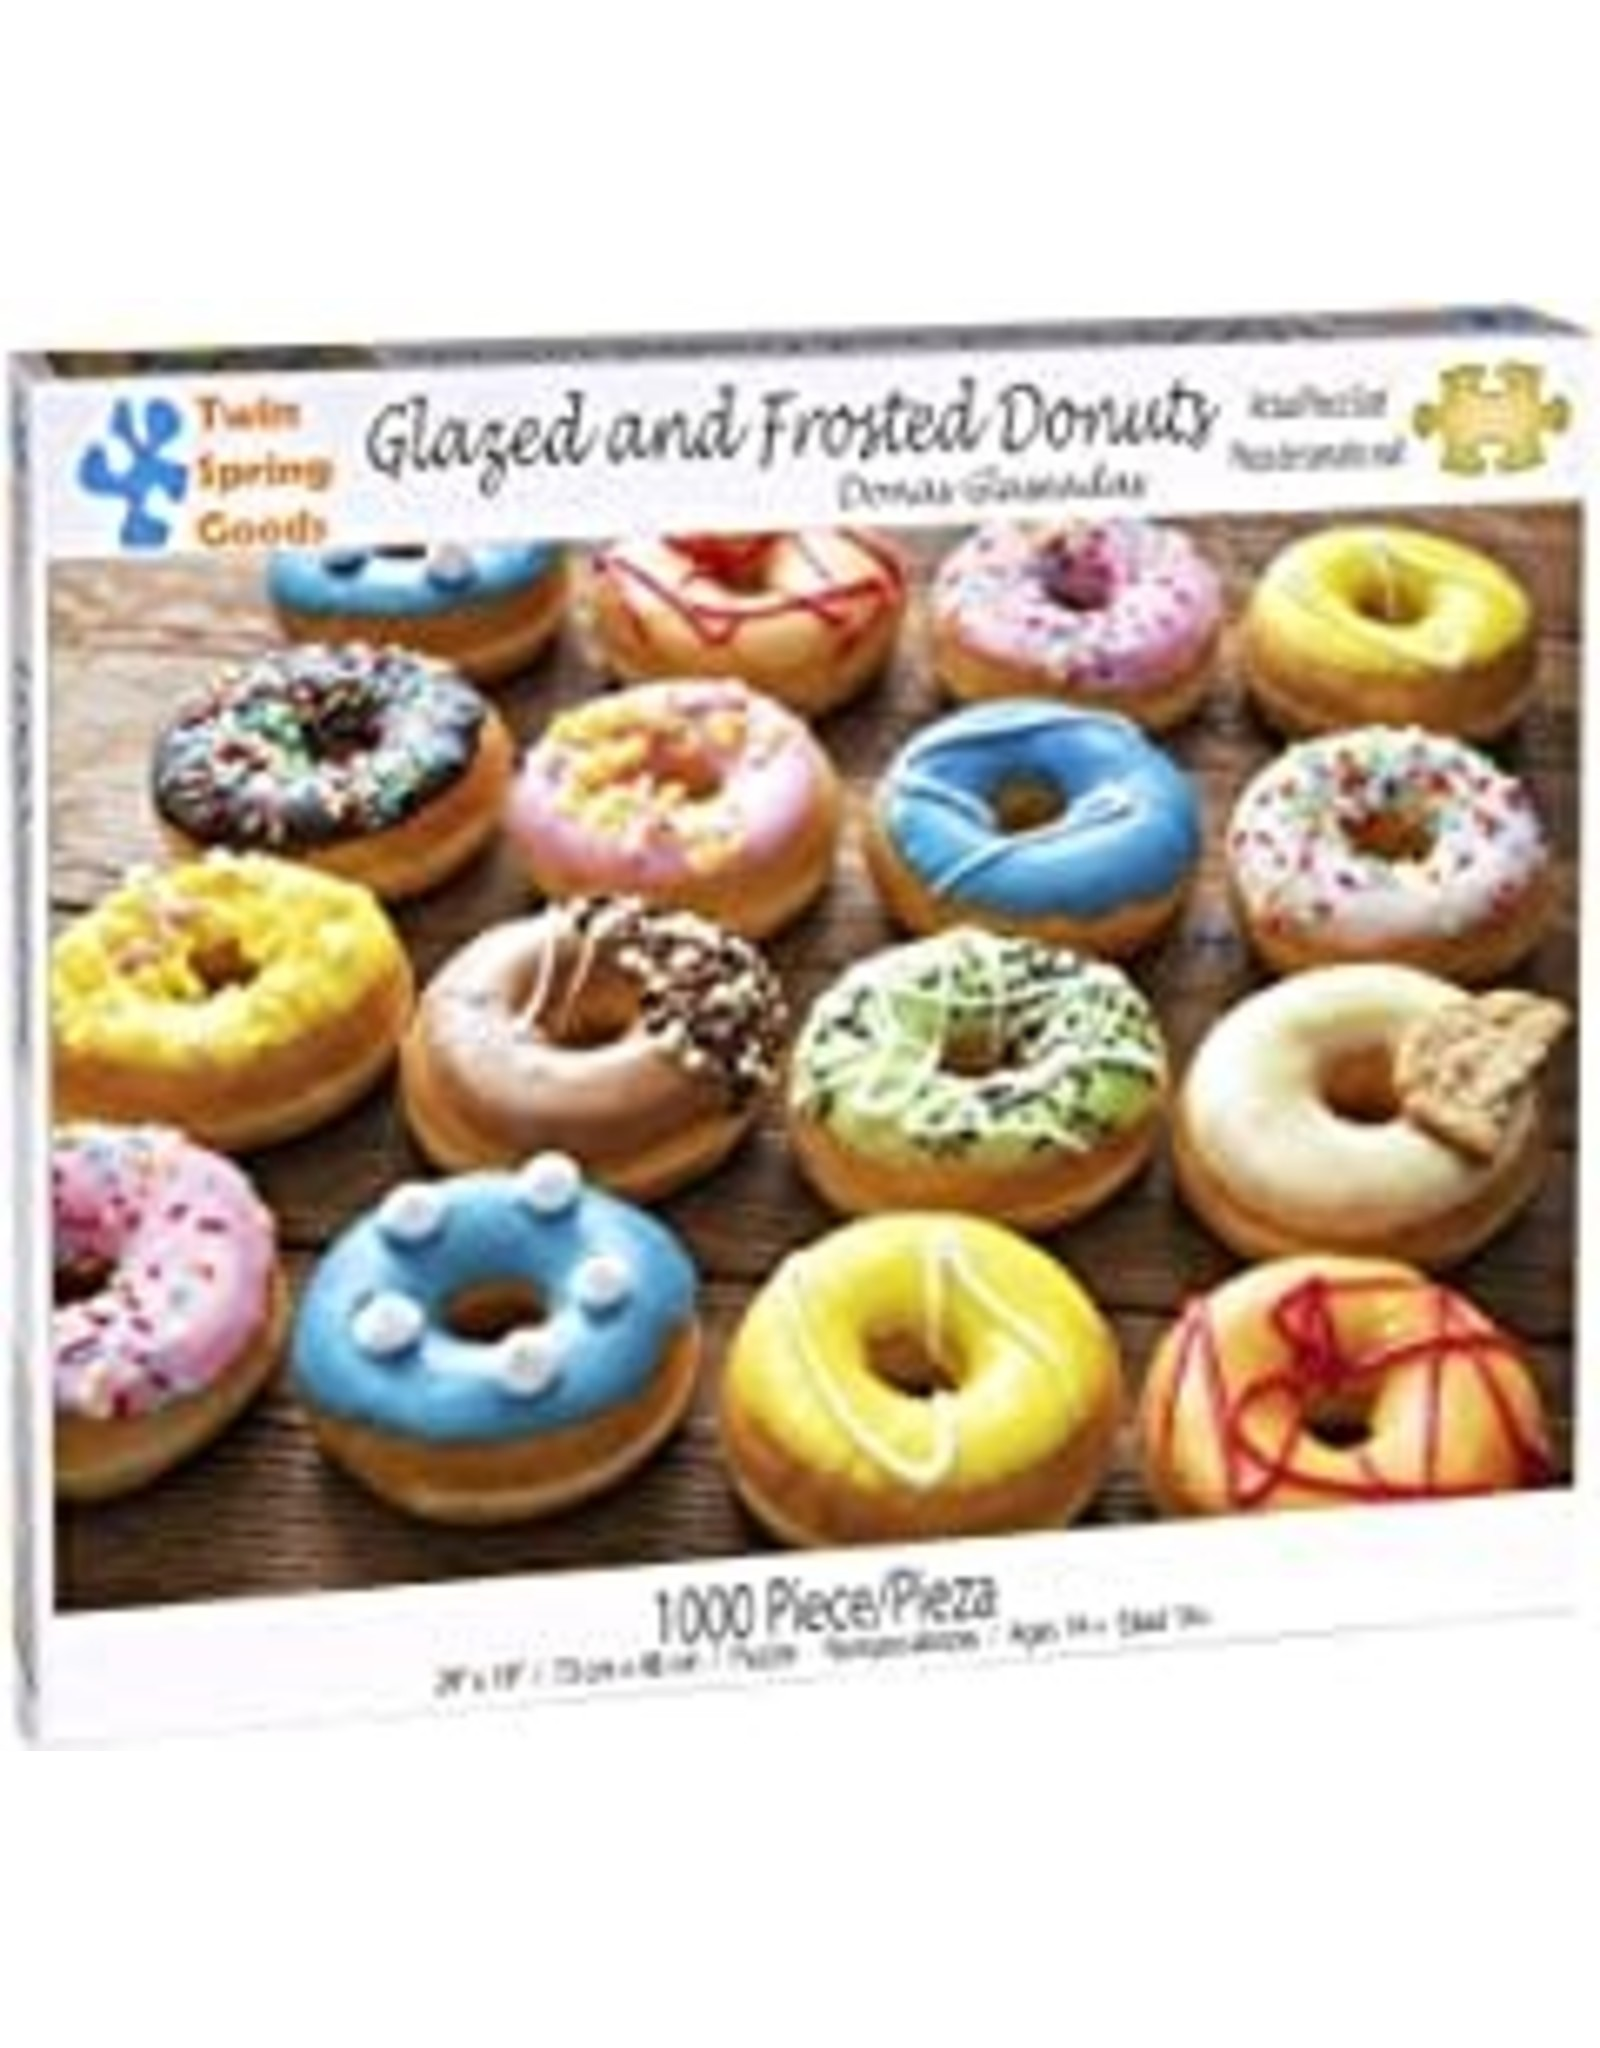 Glazed and Frosted Donuts 1000 pc